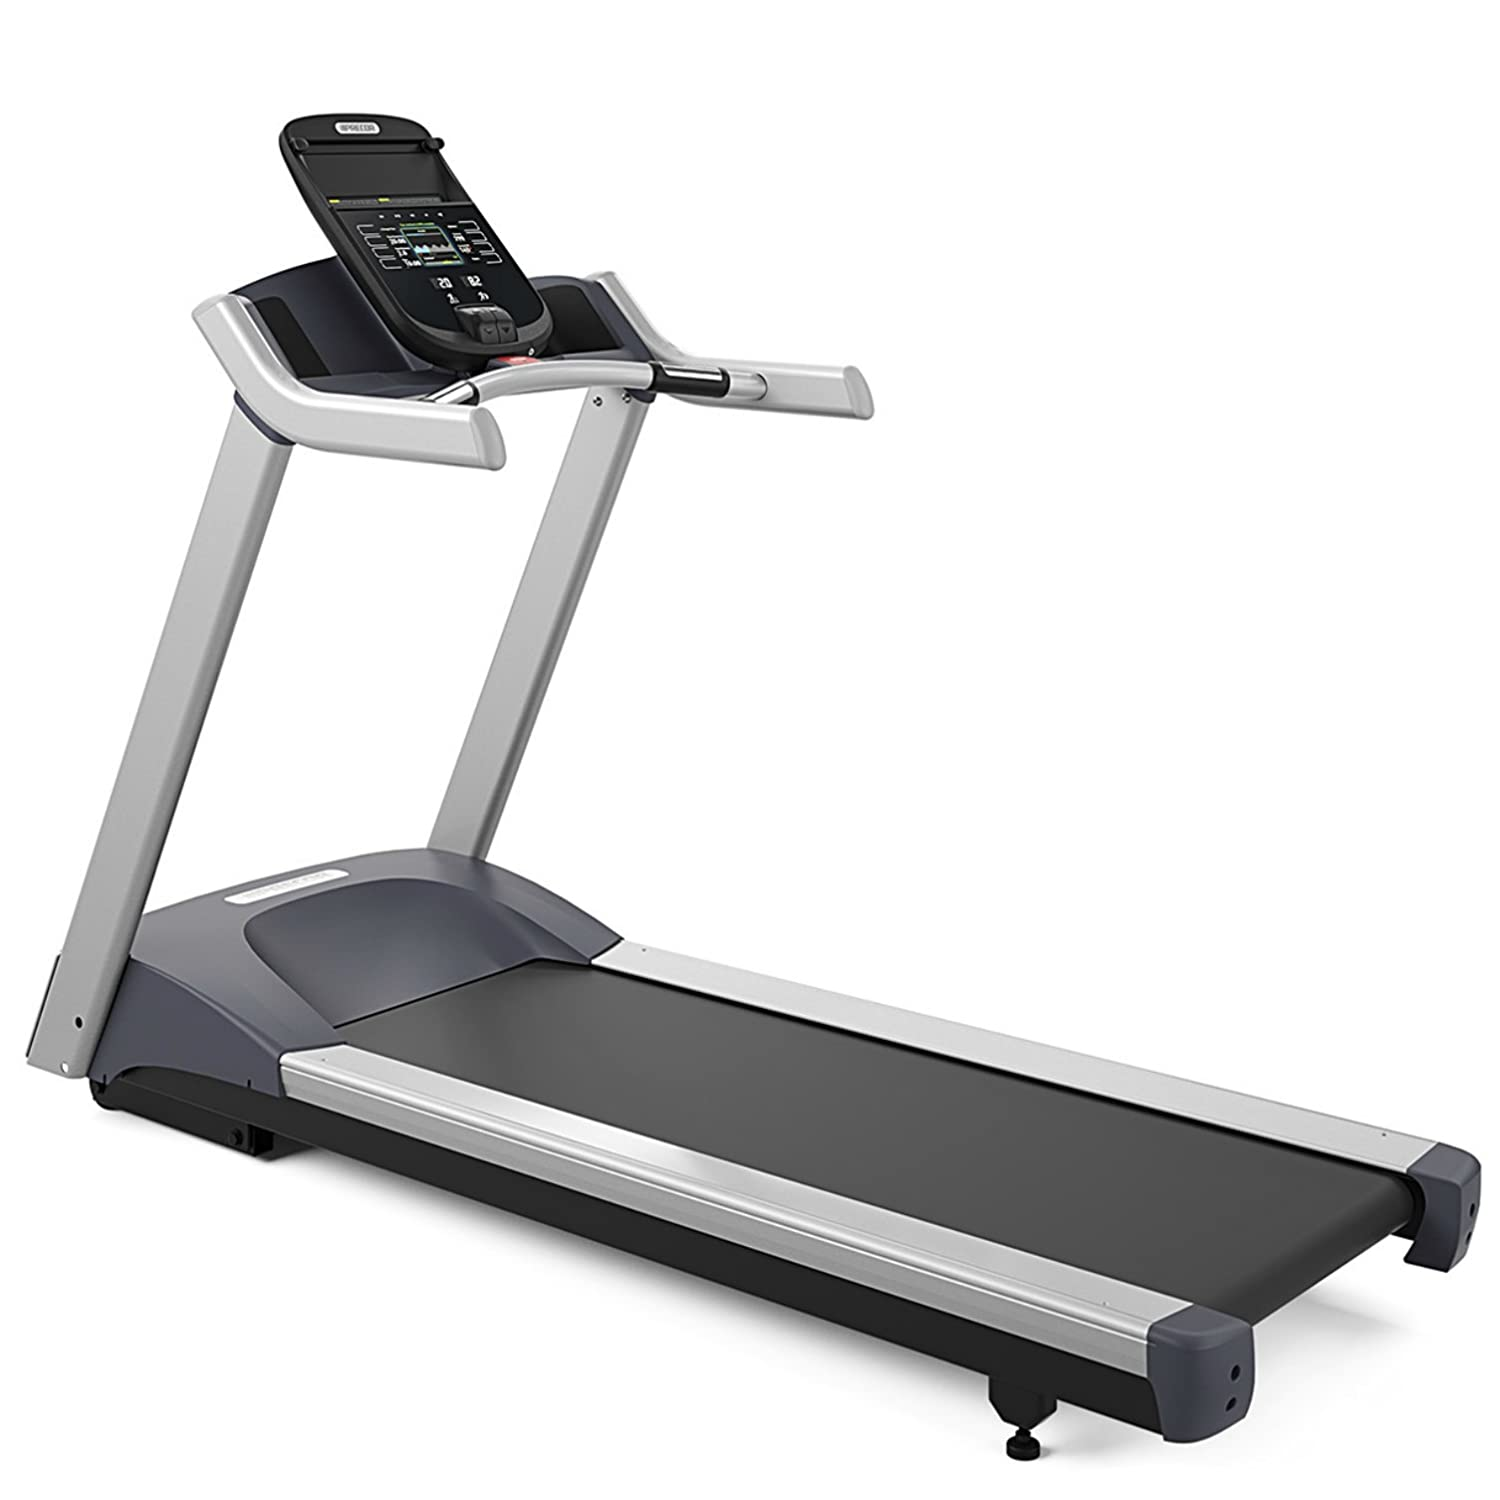 Landice L7 Treadmill Dimensions: Compare Treadmills Specs & Features And Buy: Buysabi.com